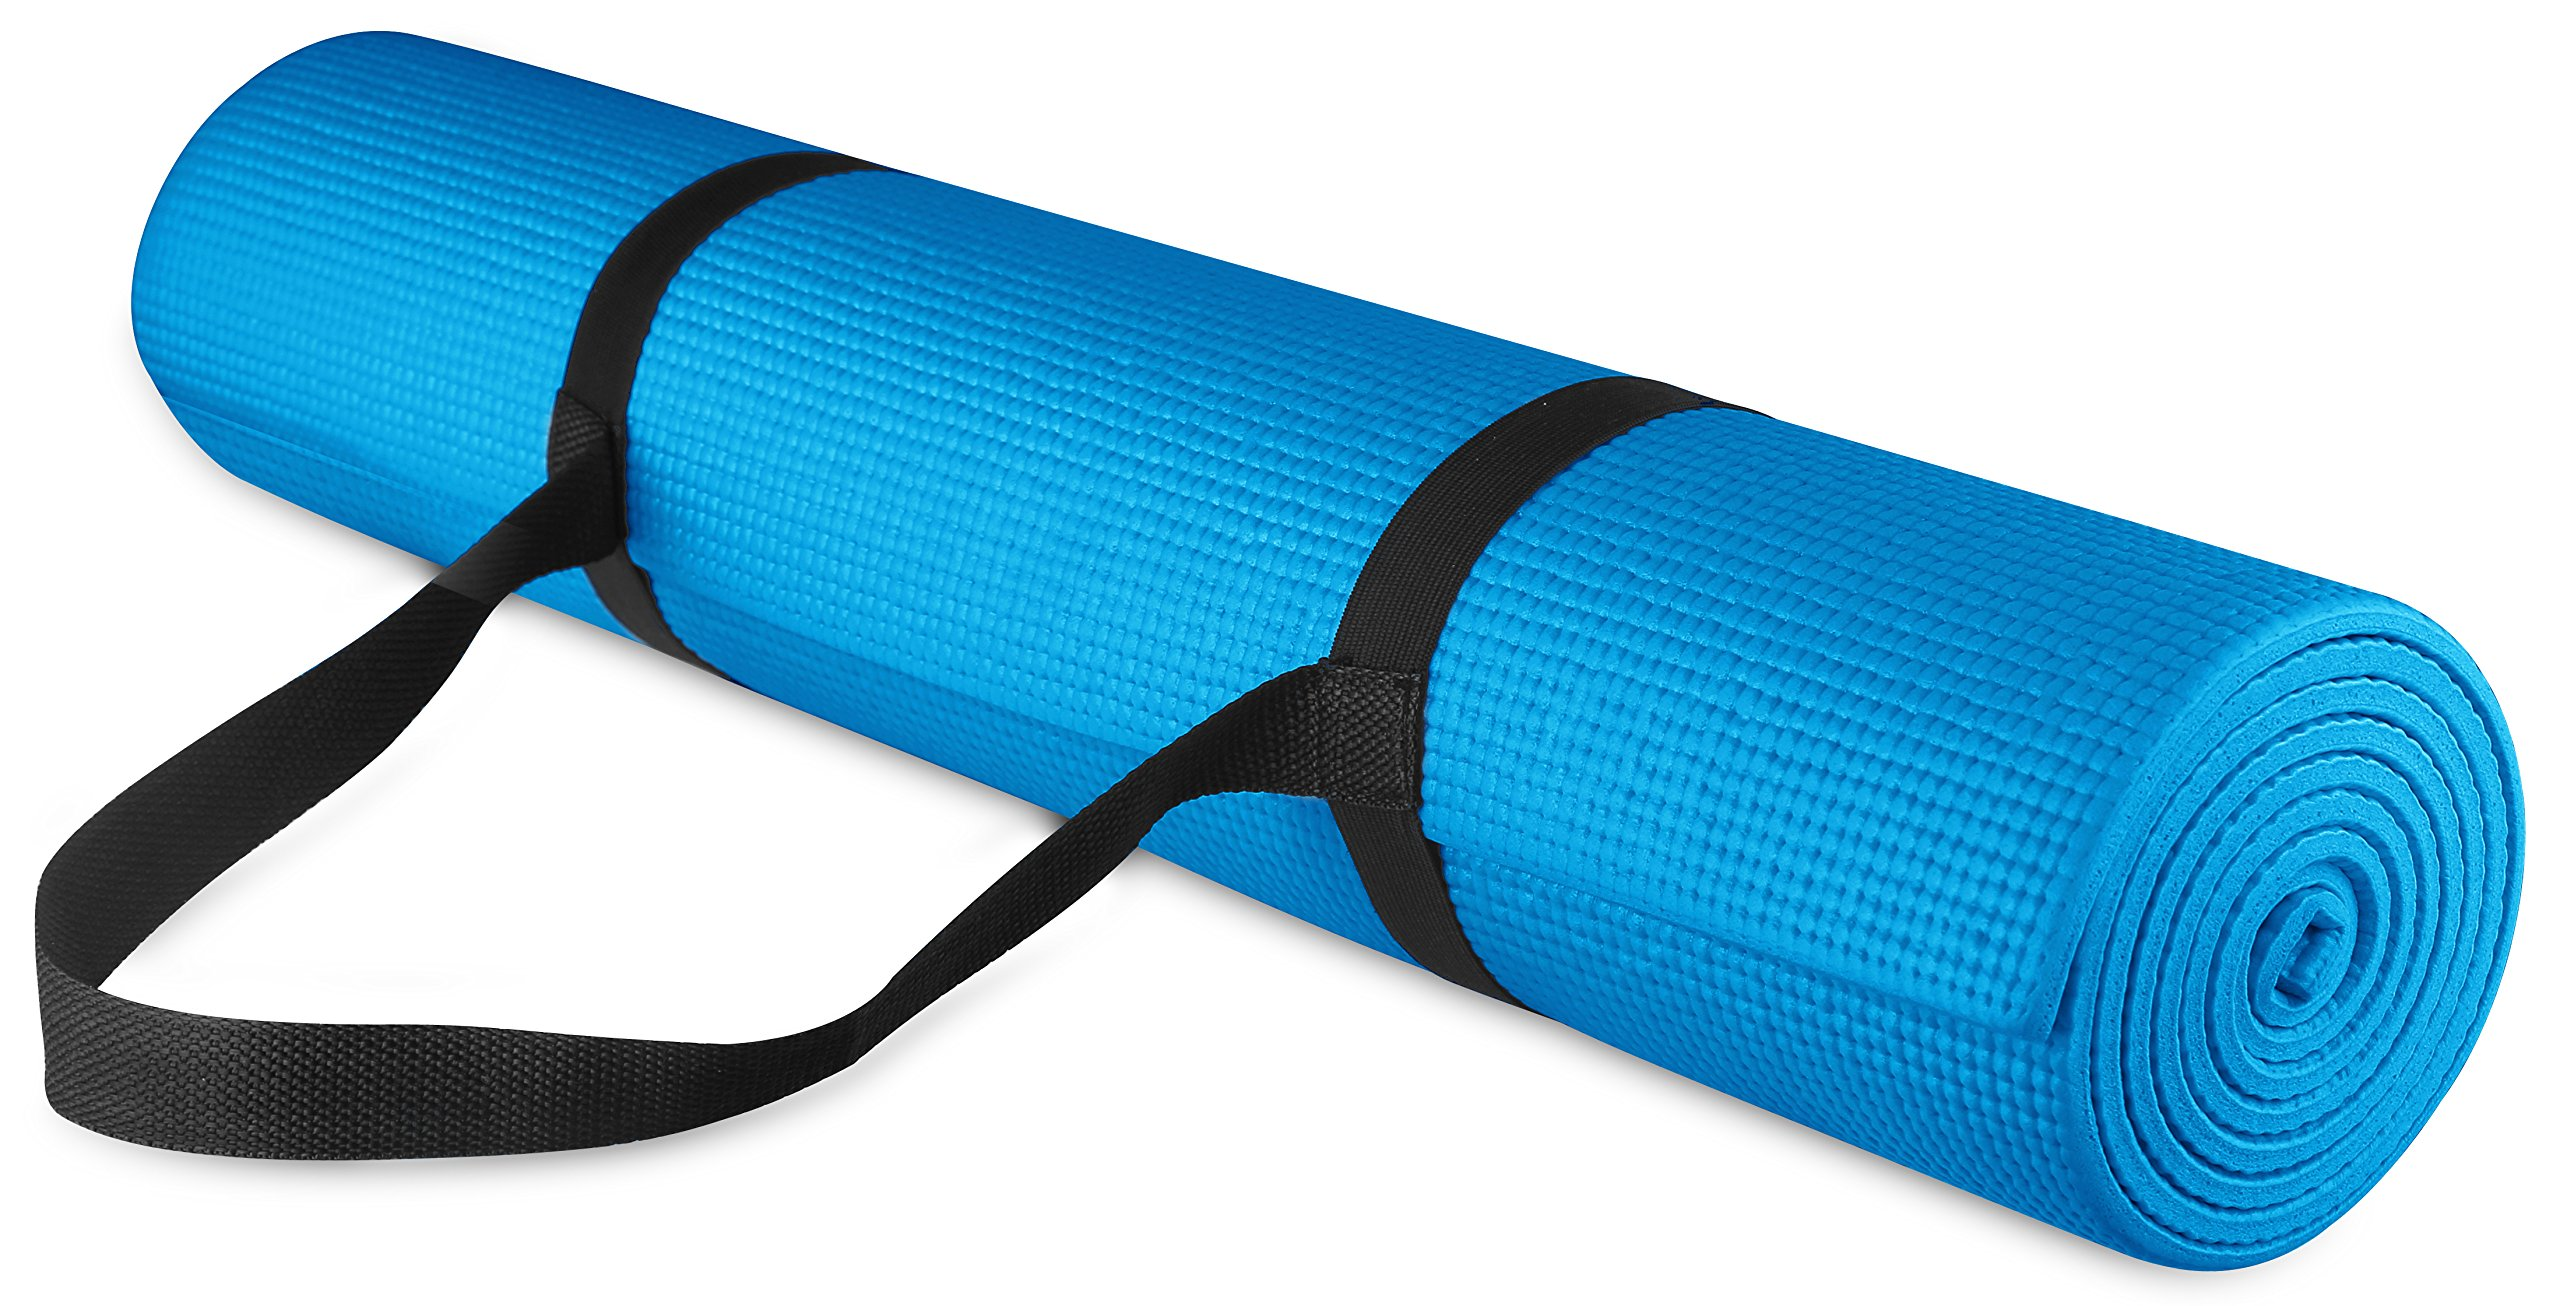 BalanceFrom GoYoga All Purpose High Density Non-Slip Exercise Yoga Mat with Carrying Strap, 1/4'', Blue